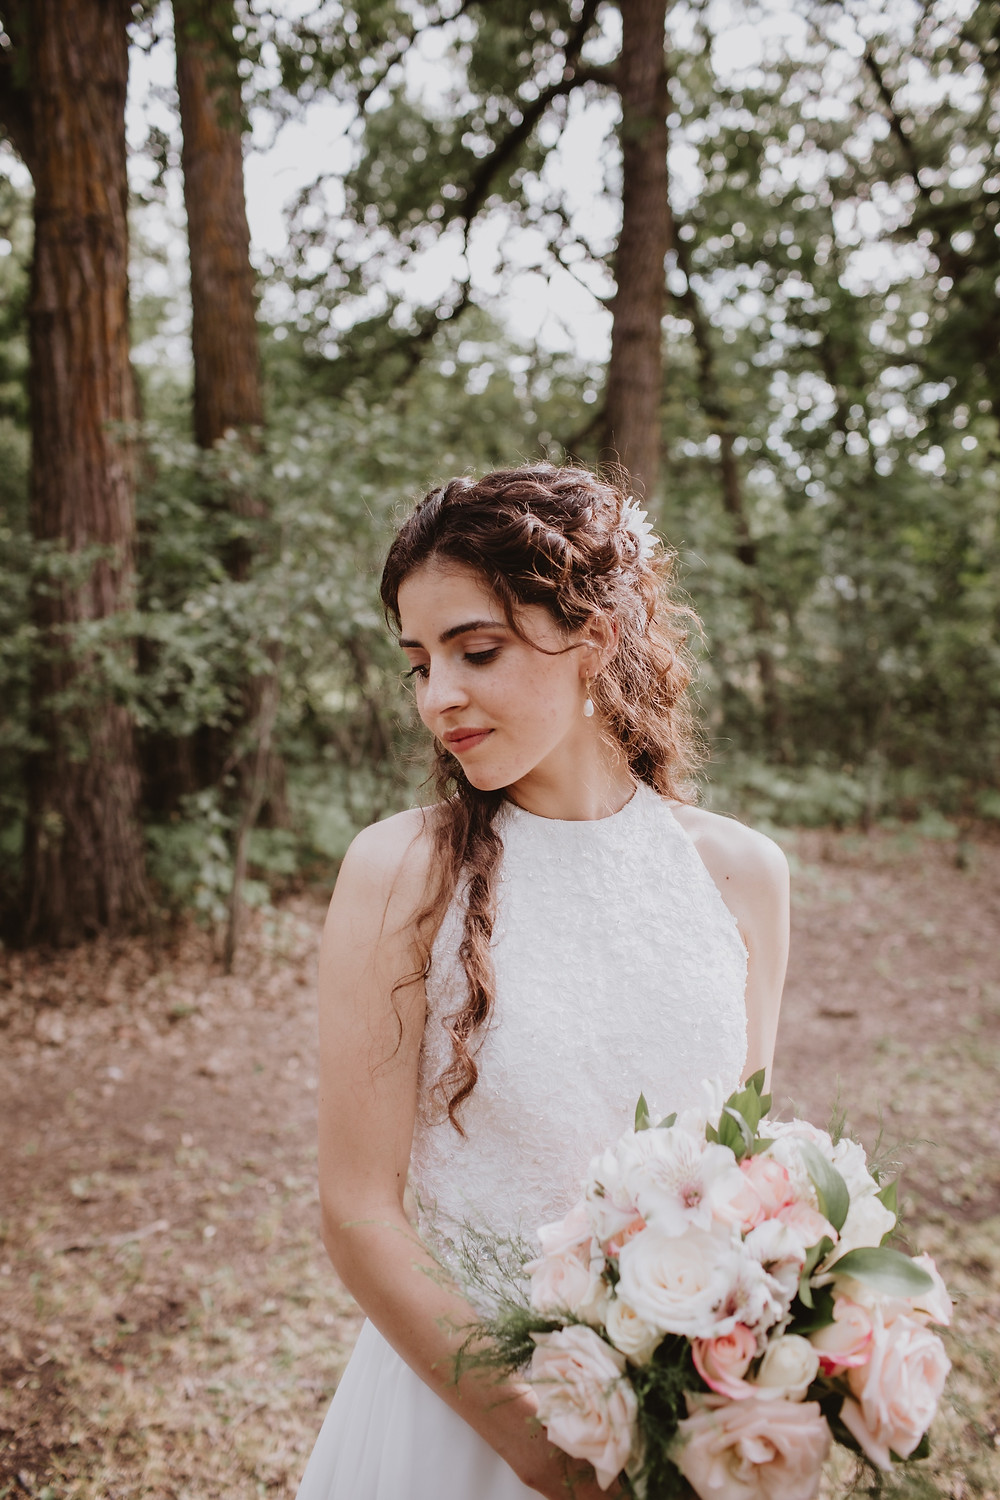 Stunning bride poses in forest.